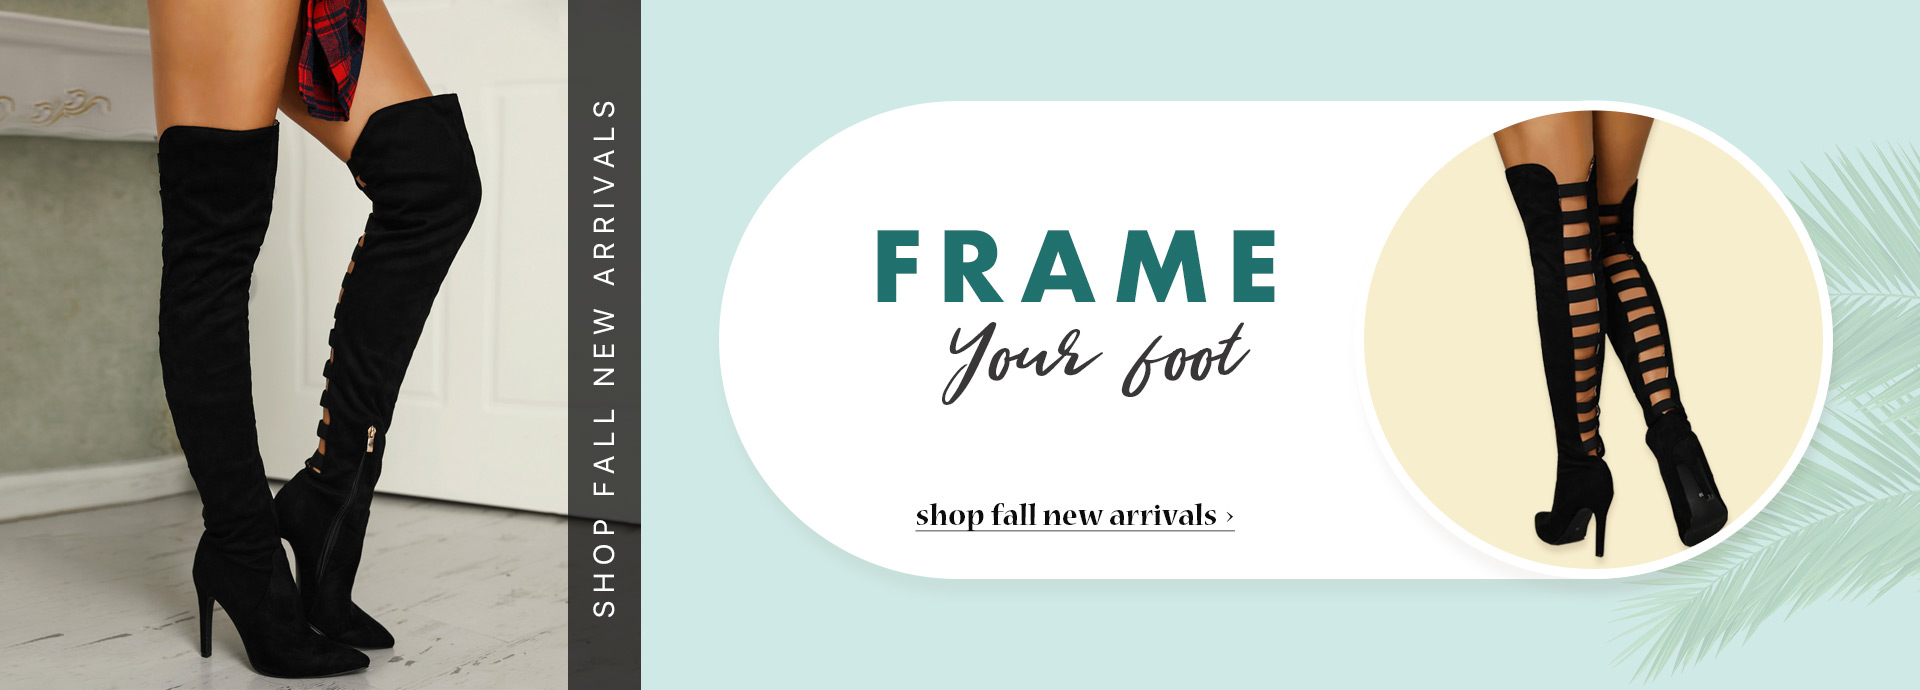 Frame Your Foot